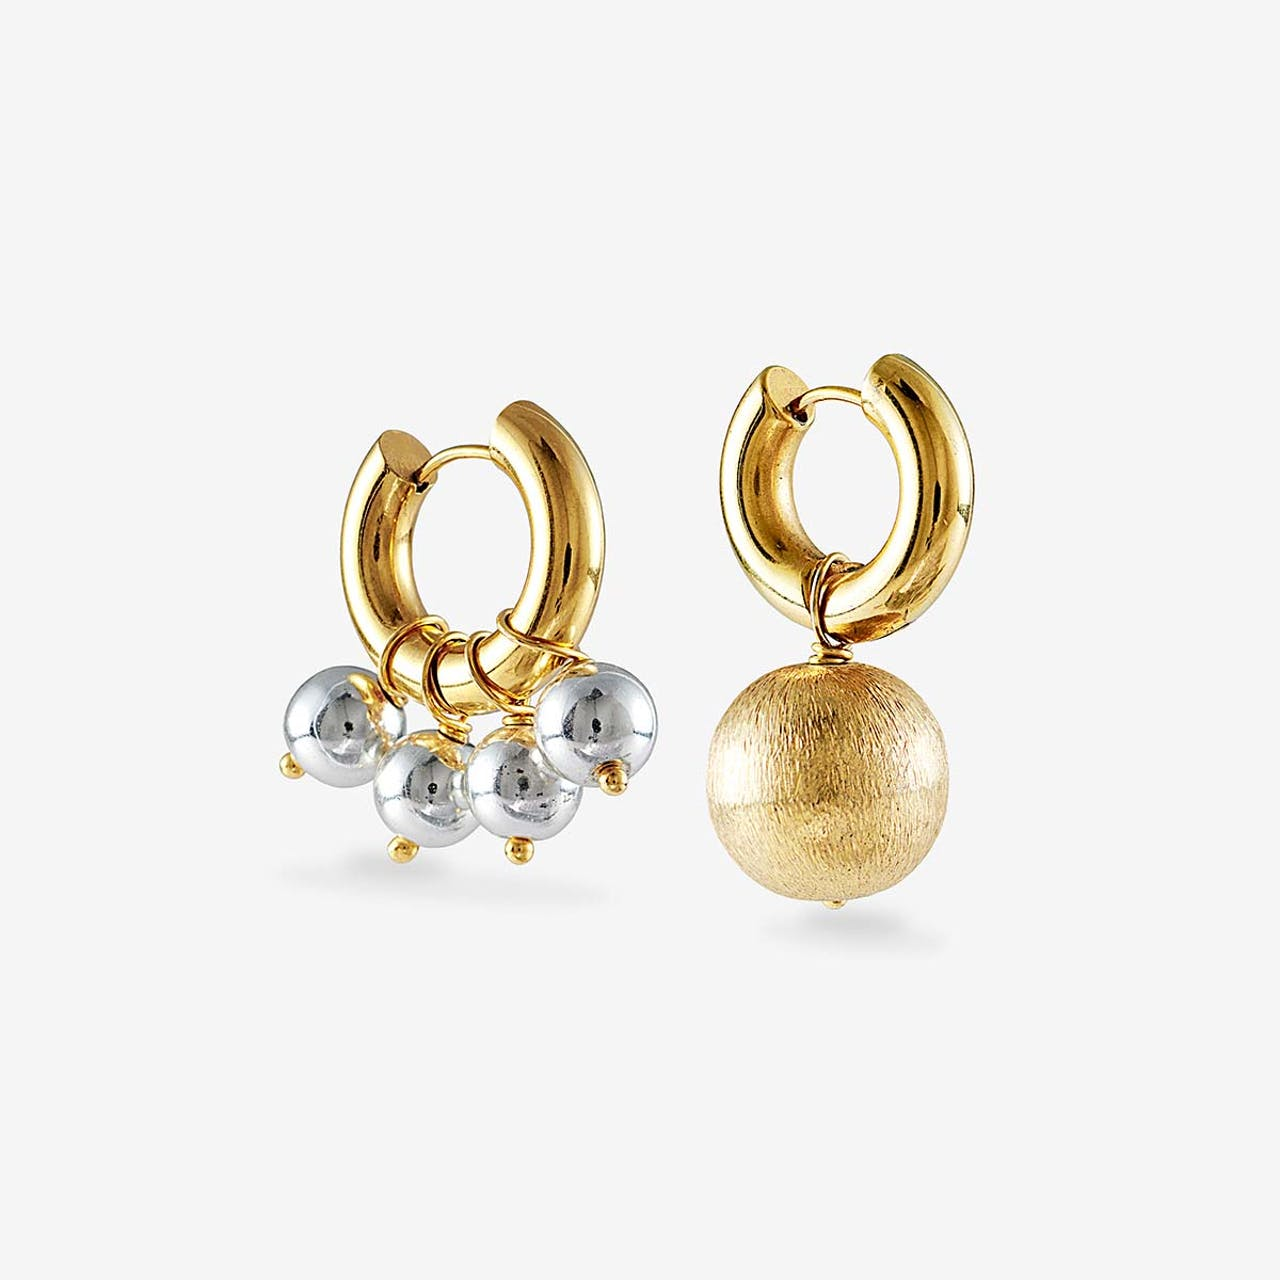 Mismatched silver and gold earrings - Creolen - Gold